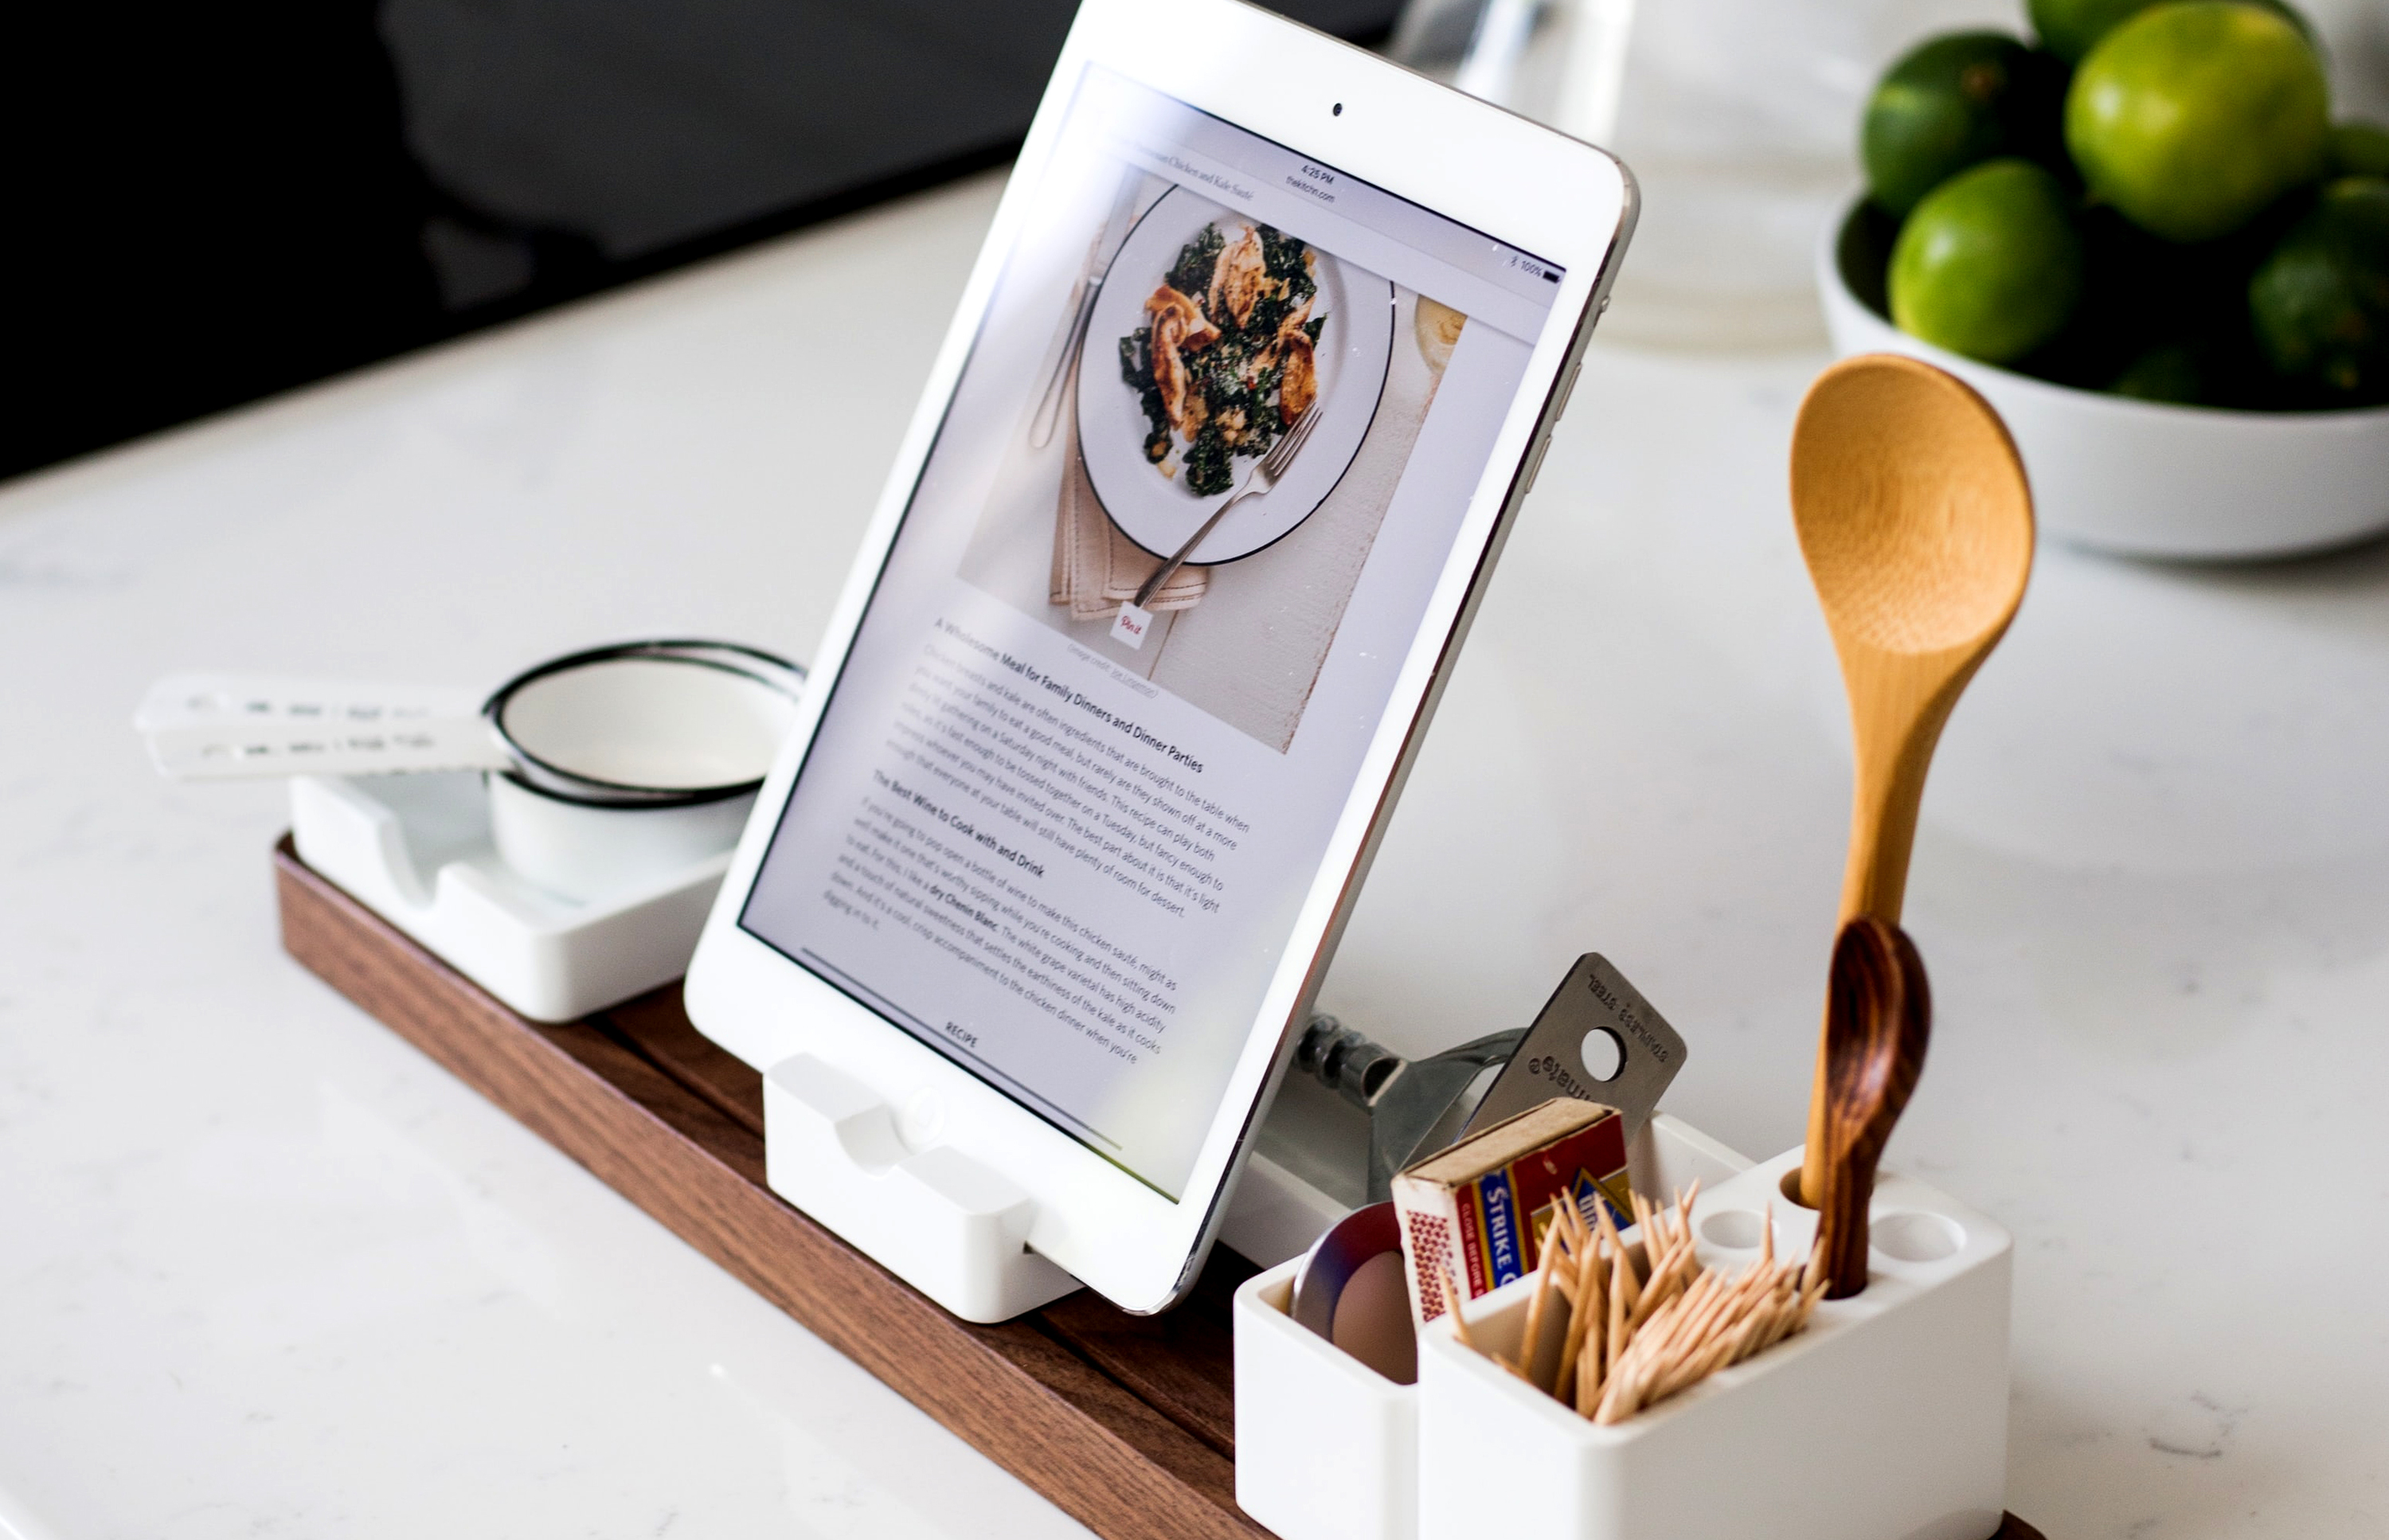 Online cooking courses I Photo by Jeff Sheldon